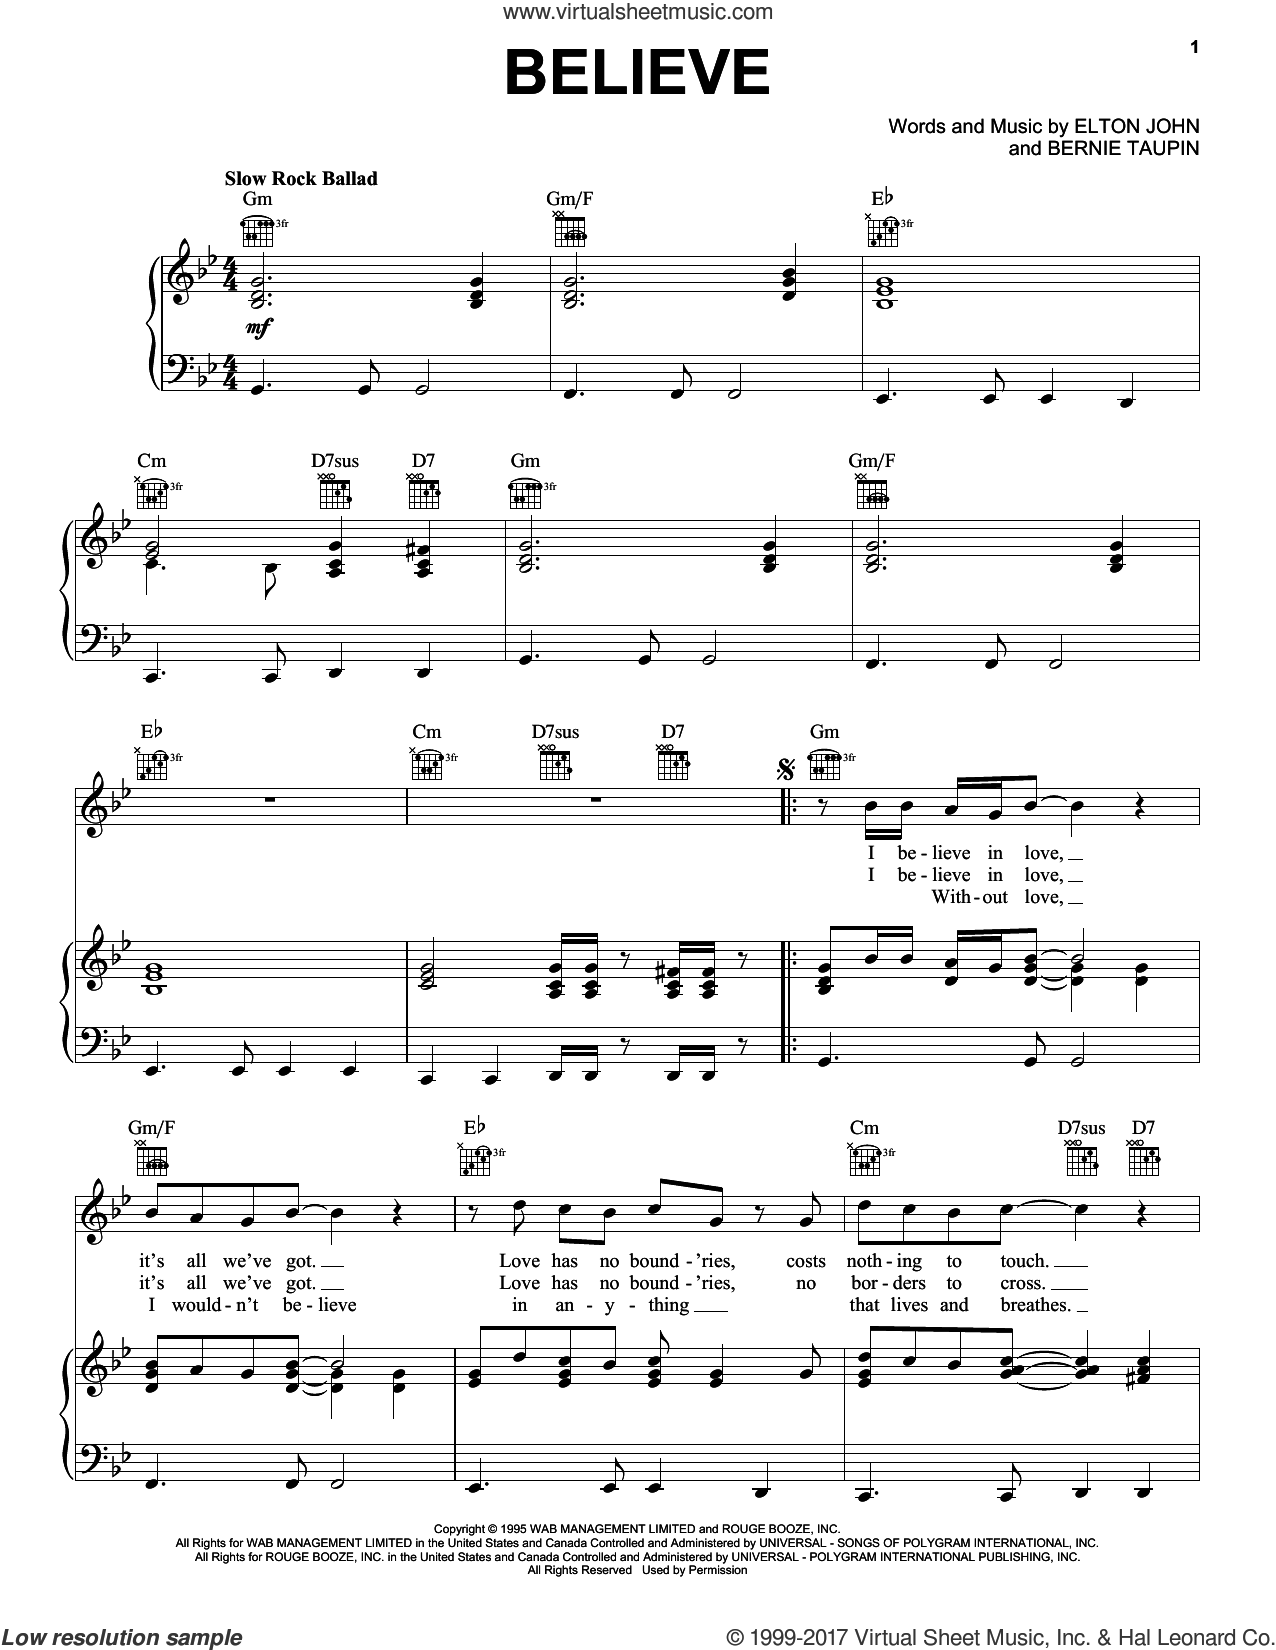 Believe sheet music for voice, piano or guitar by Elton John and Bernie Taupin, intermediate skill level